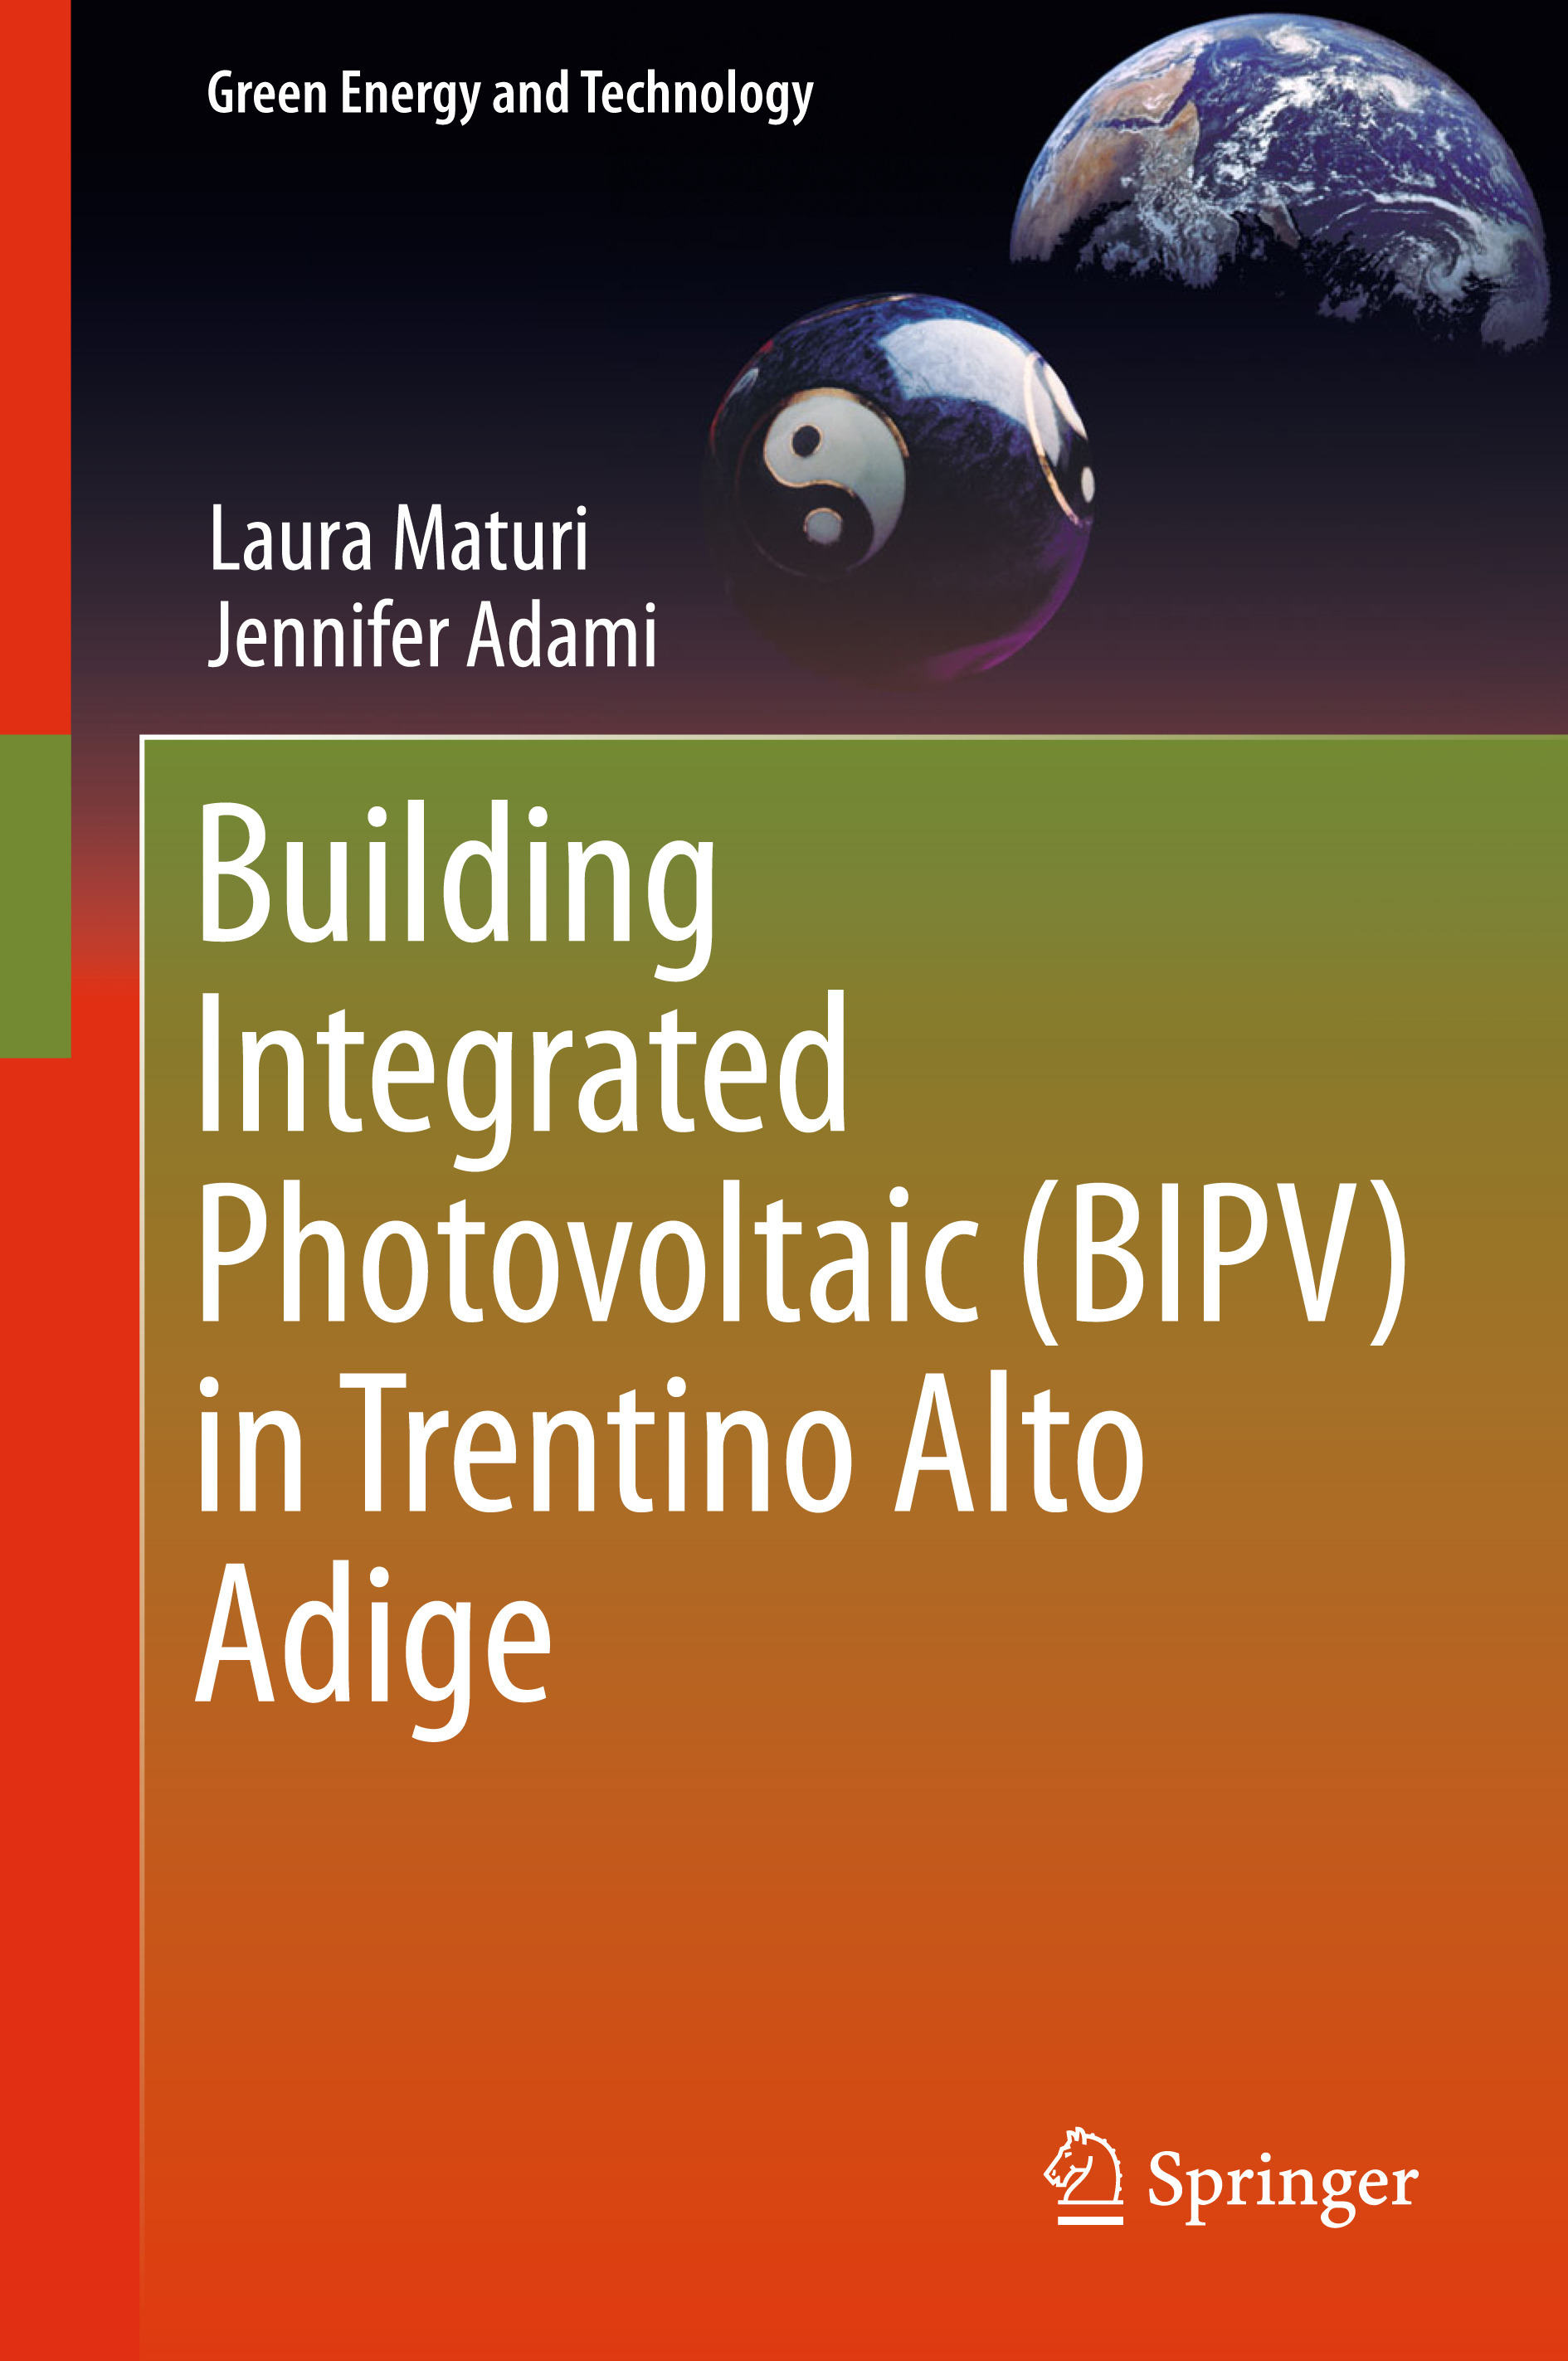 Adami, Jennifer - Building Integrated Photovoltaic (BIPV) in Trentino Alto Adige, ebook